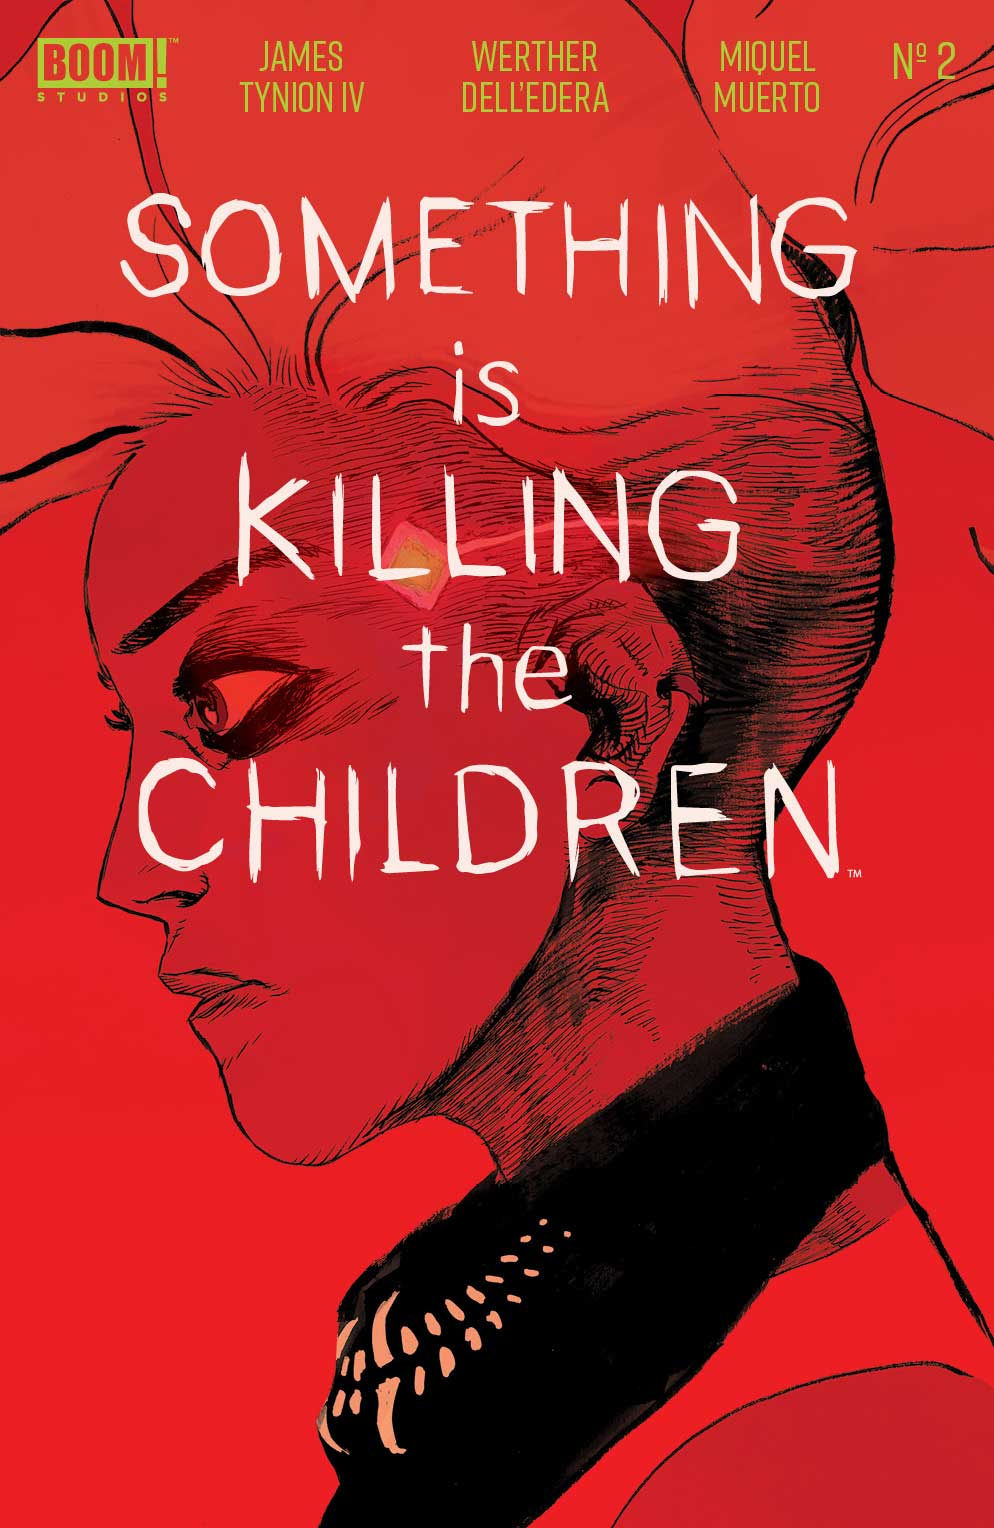 Image result for someone is killing the children 2